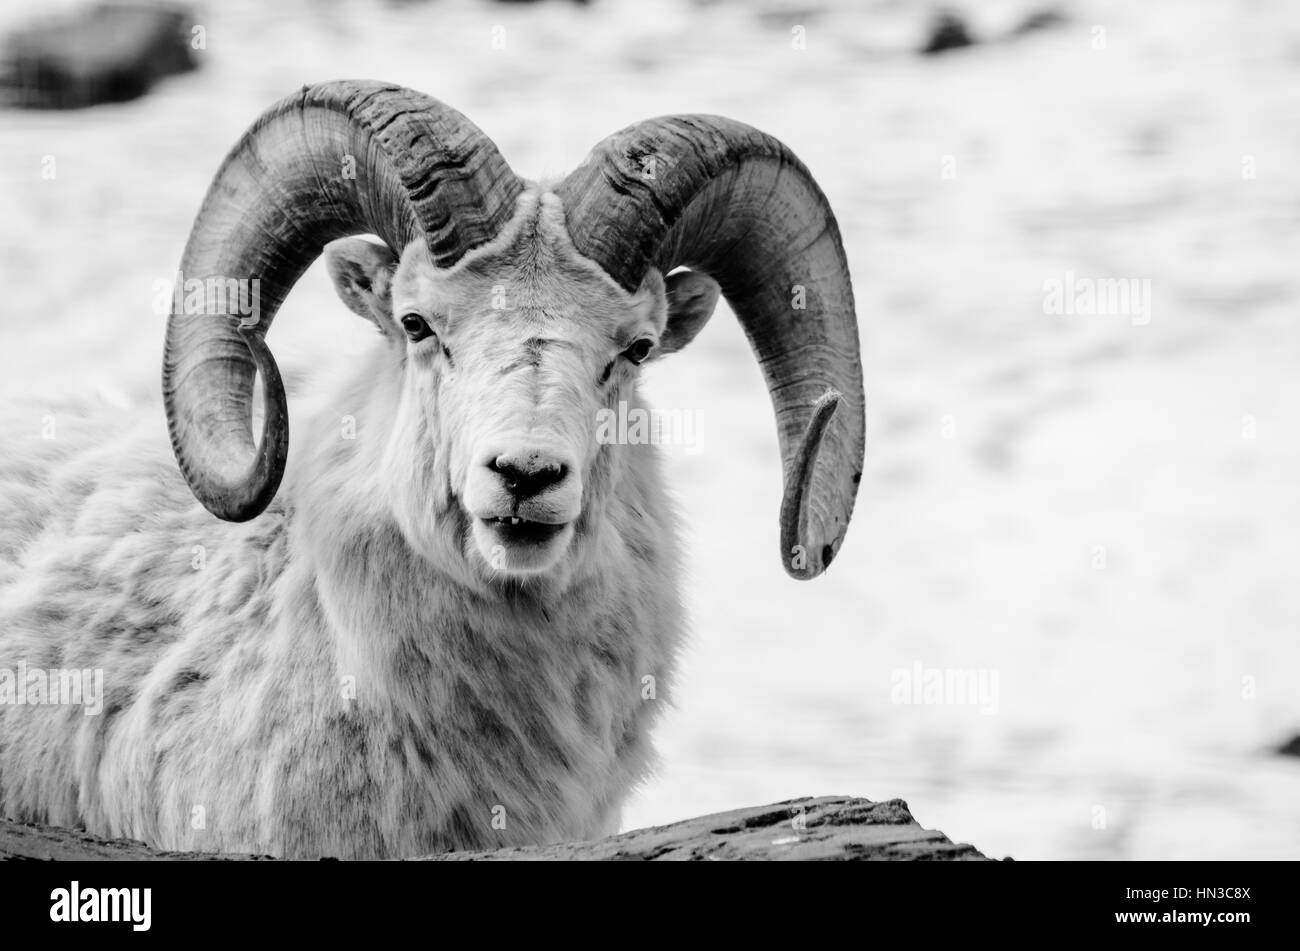 Mammal Ram Black and White Stock Photos & Images - Alamy